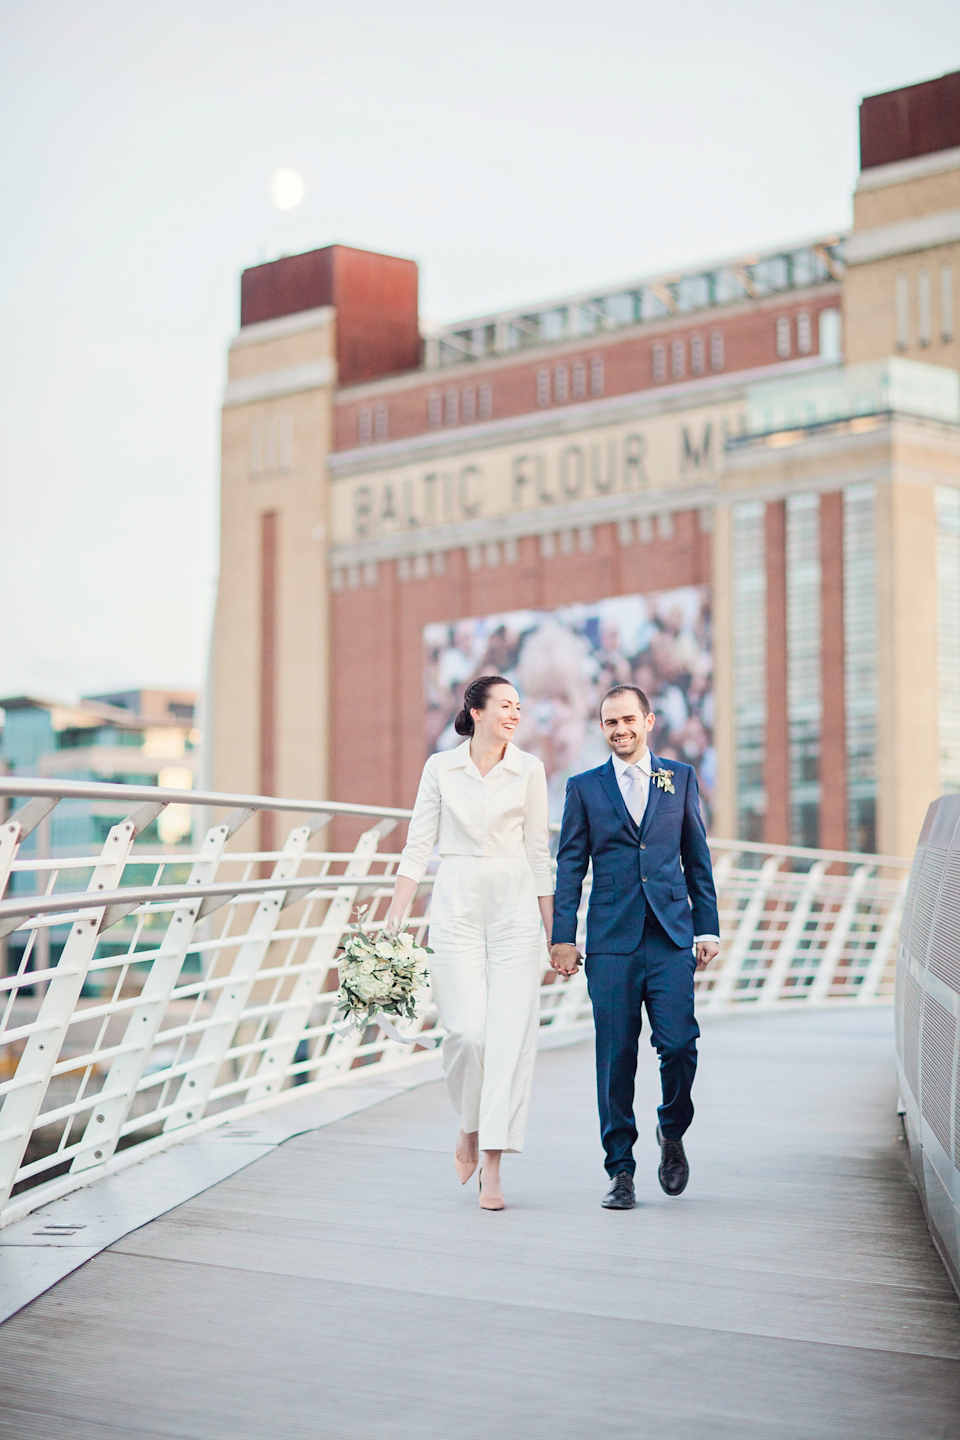 An Emilia Wickstead Jumpsuit for a Modern Wedding at The Baltic Centre for Contemporary Arts